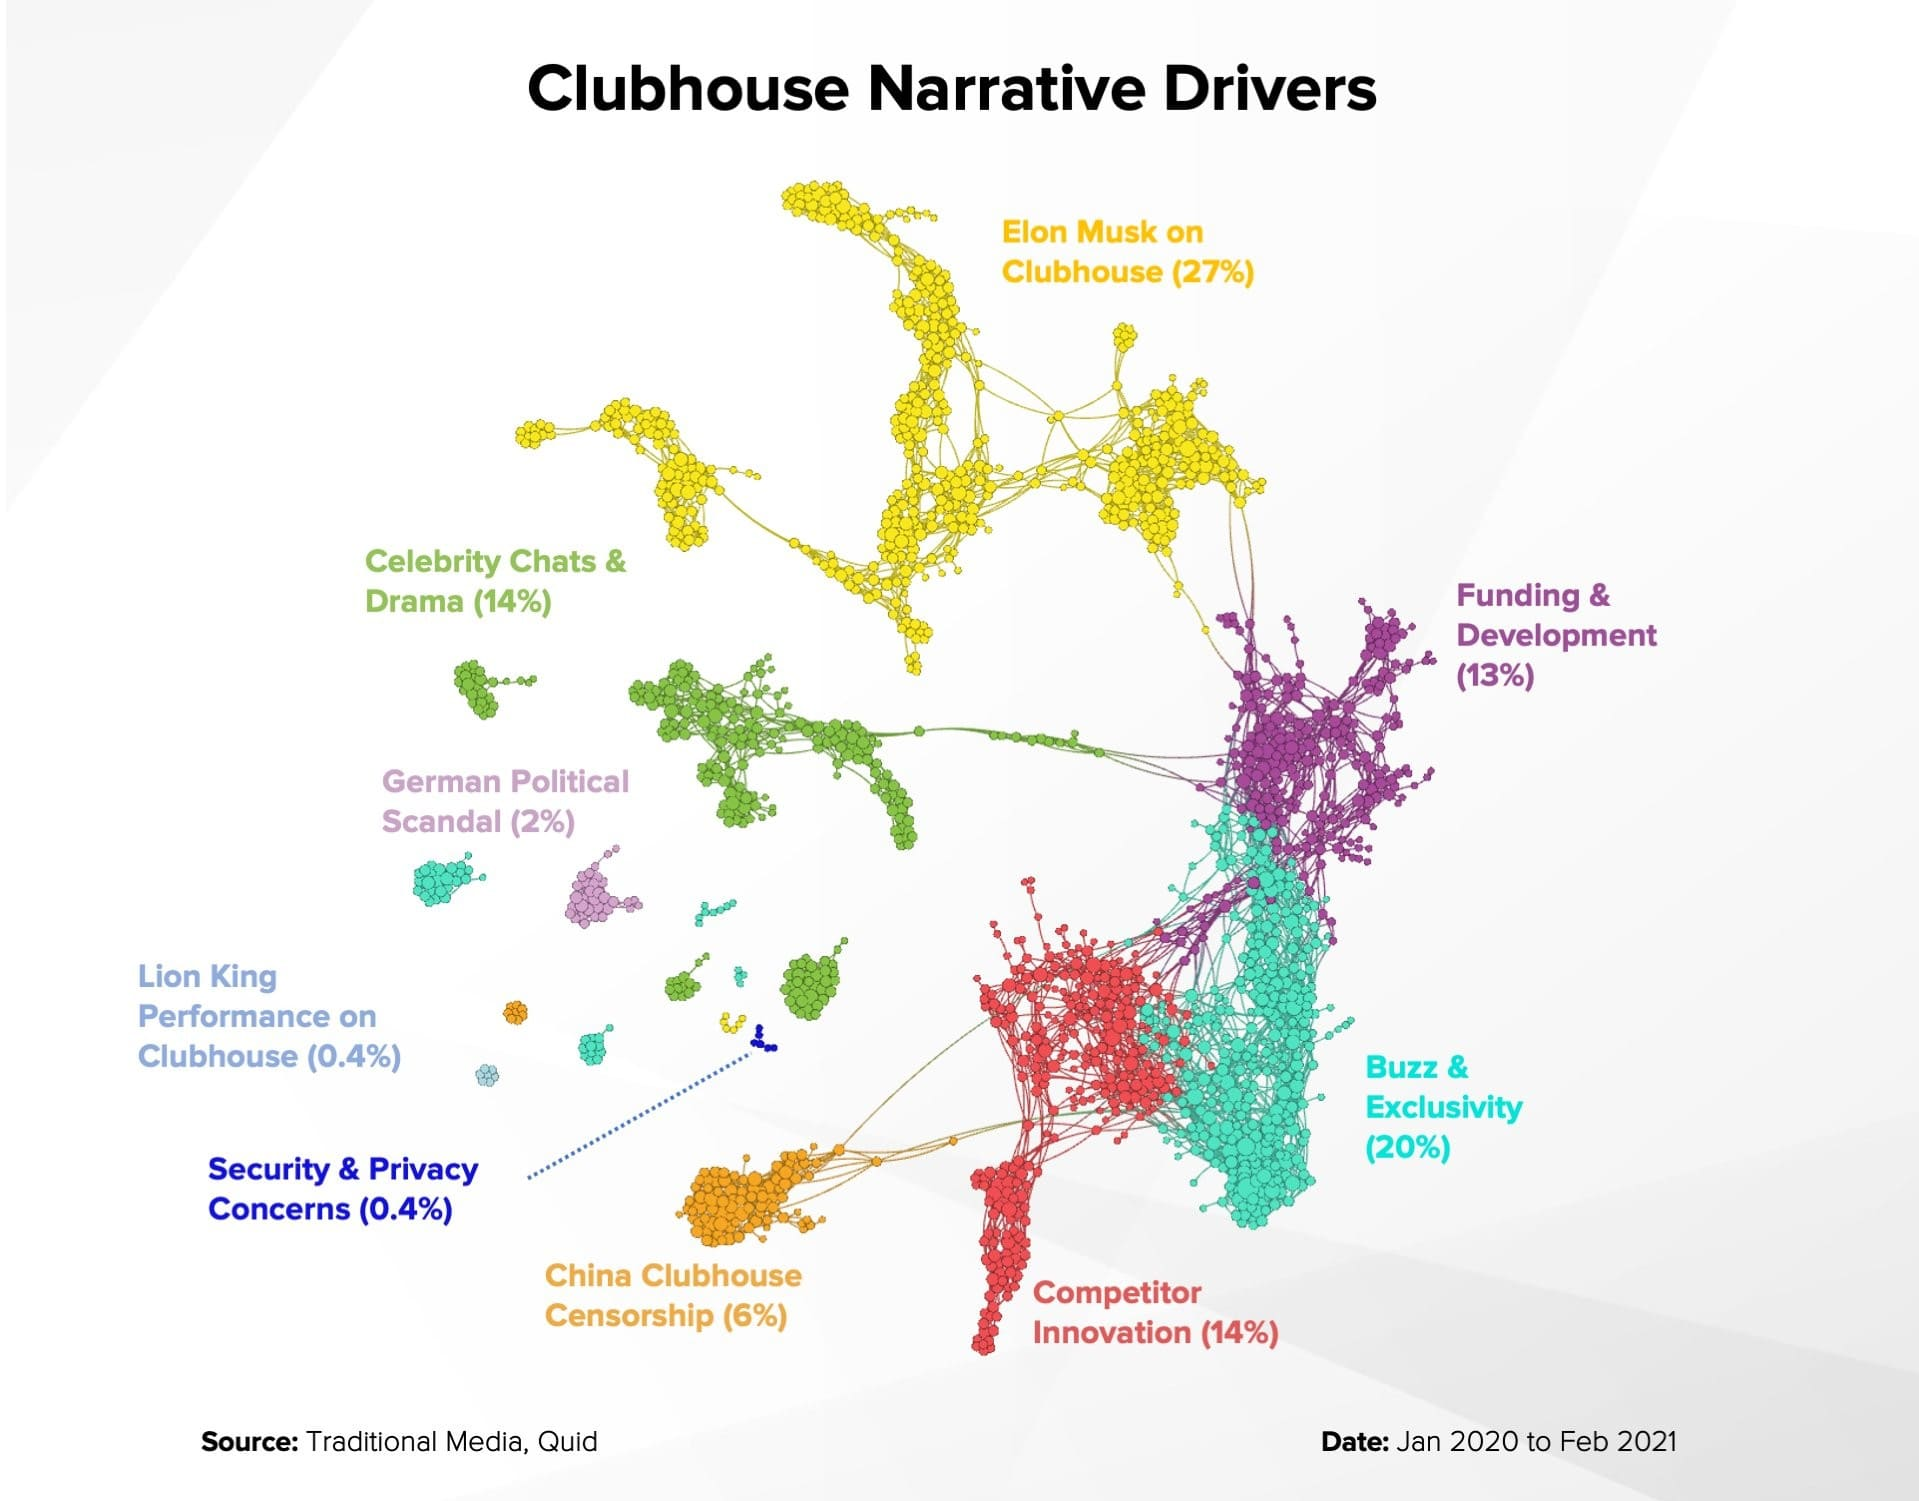 Clubhouse Narrative Drivers